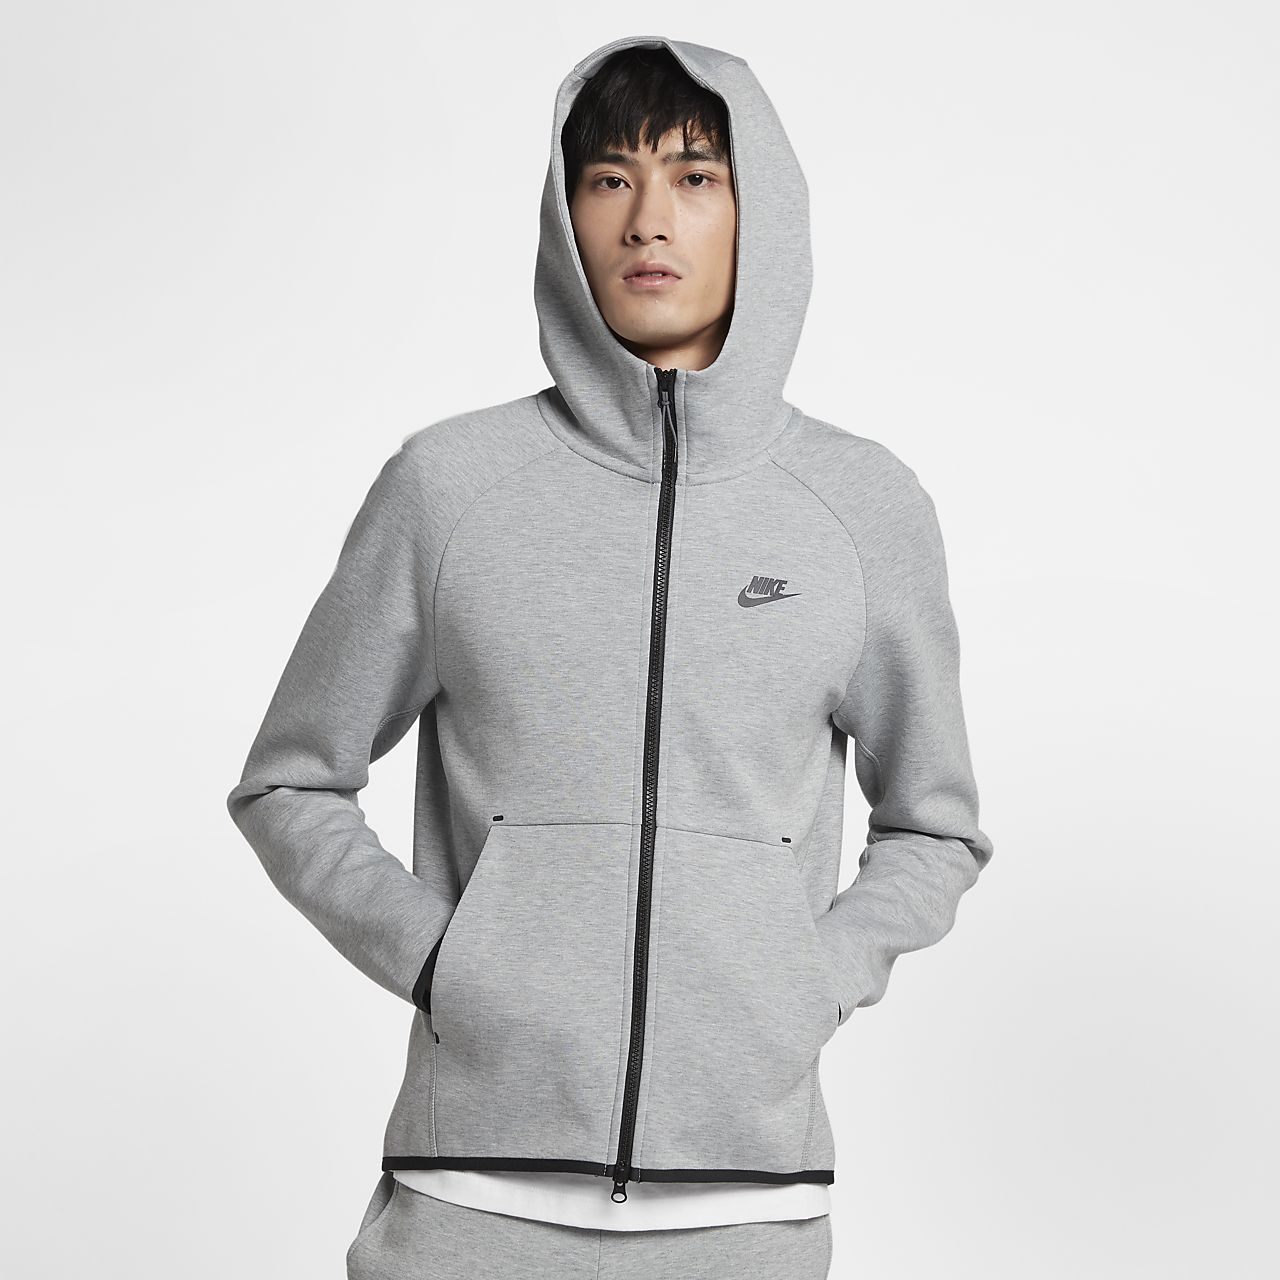 8bcc55d97d57 Nike Sportswear Tech Fleece Men s Full-Zip Hoodie. Nike.com LU